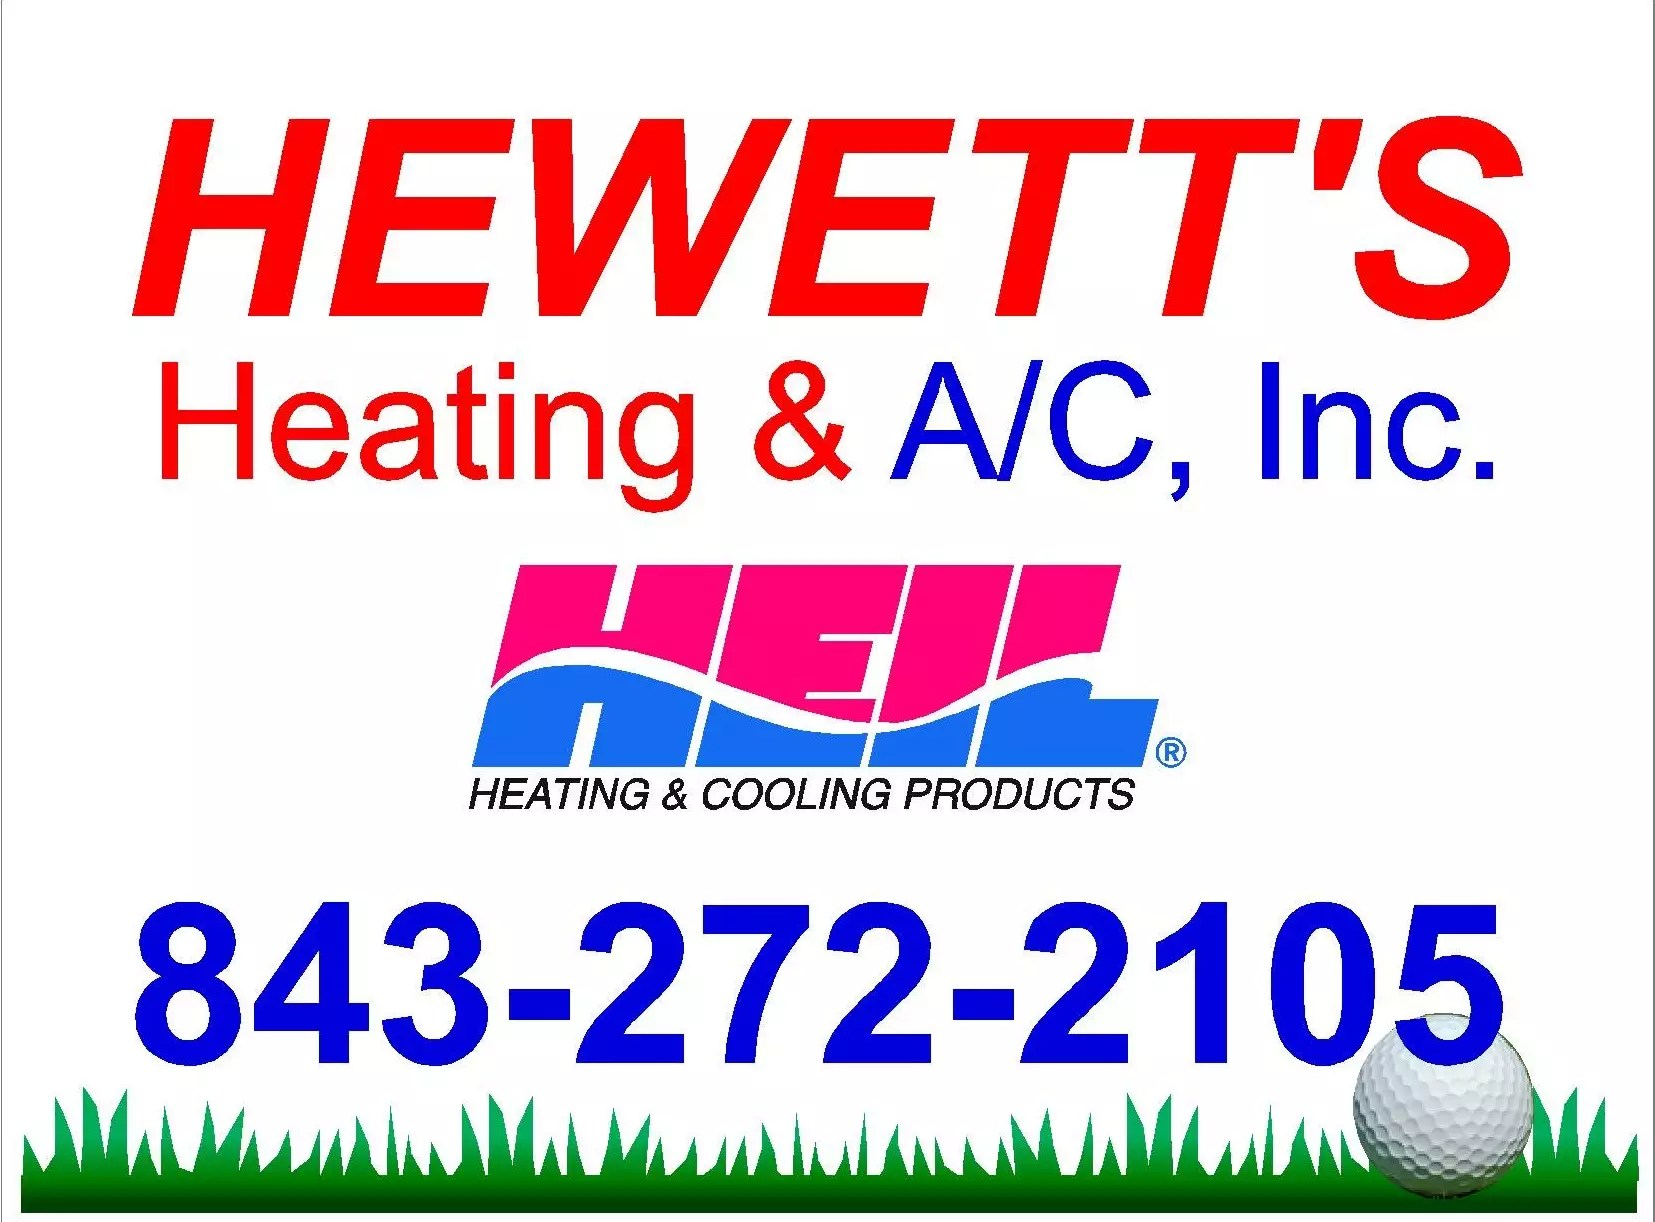 Hewetts Heating and a/c